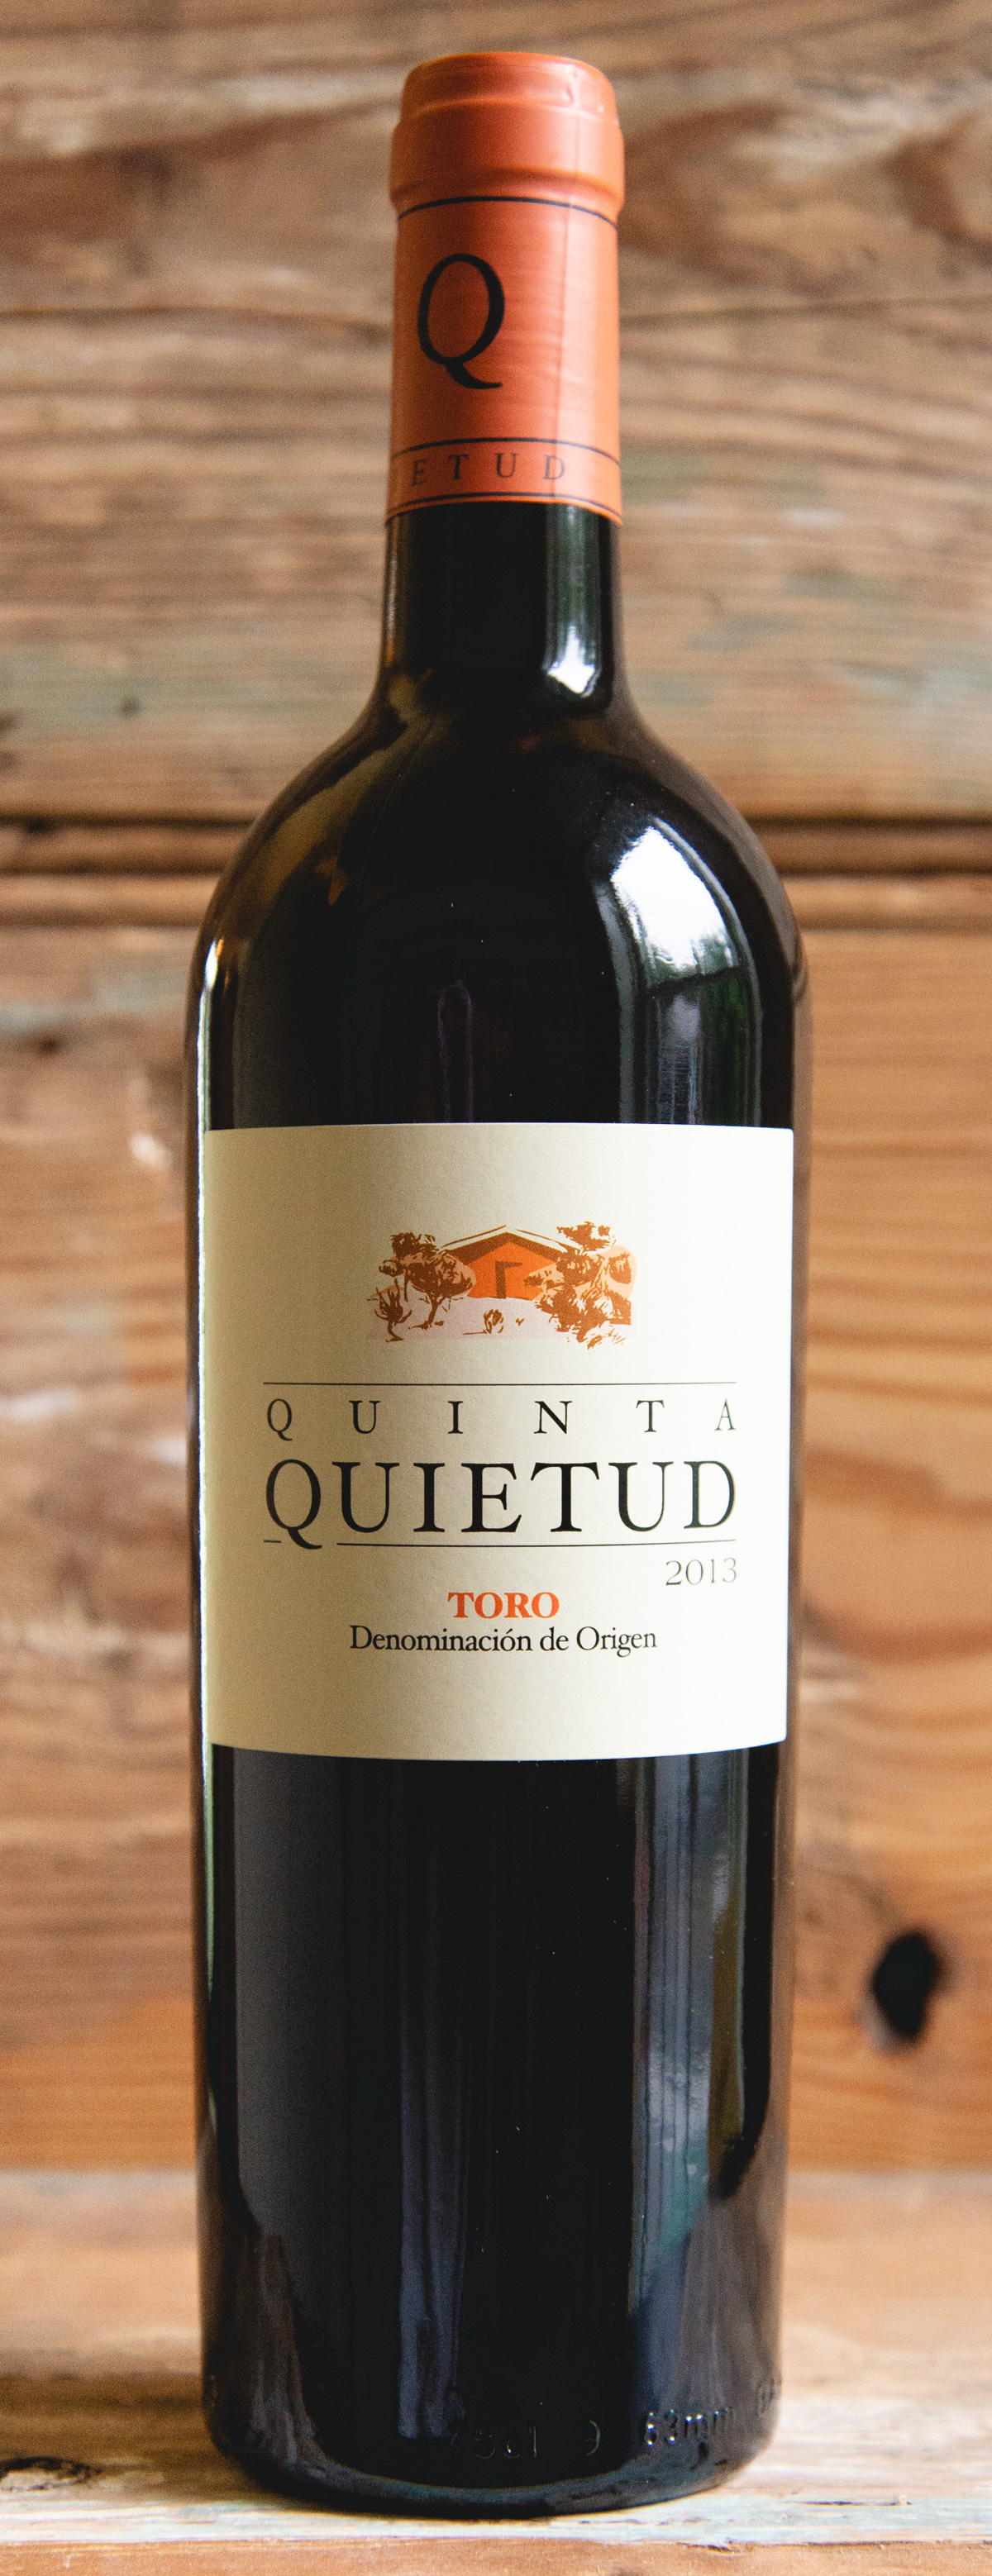 """Quinta de La Quietud Toro """"Le Quietud"""" 2013 - Origin: SpainRetail: $34.95   Sale: $31.45Coming from older vines, this wine spends two years in French Oak barrels before being bottled. The nose is powerful with complex aromas of fruit jam, licorice, and touches of graphite. The palate is full with velvety soft tannins. This is beautiful wine with lots of personality.100% Tempranillo"""